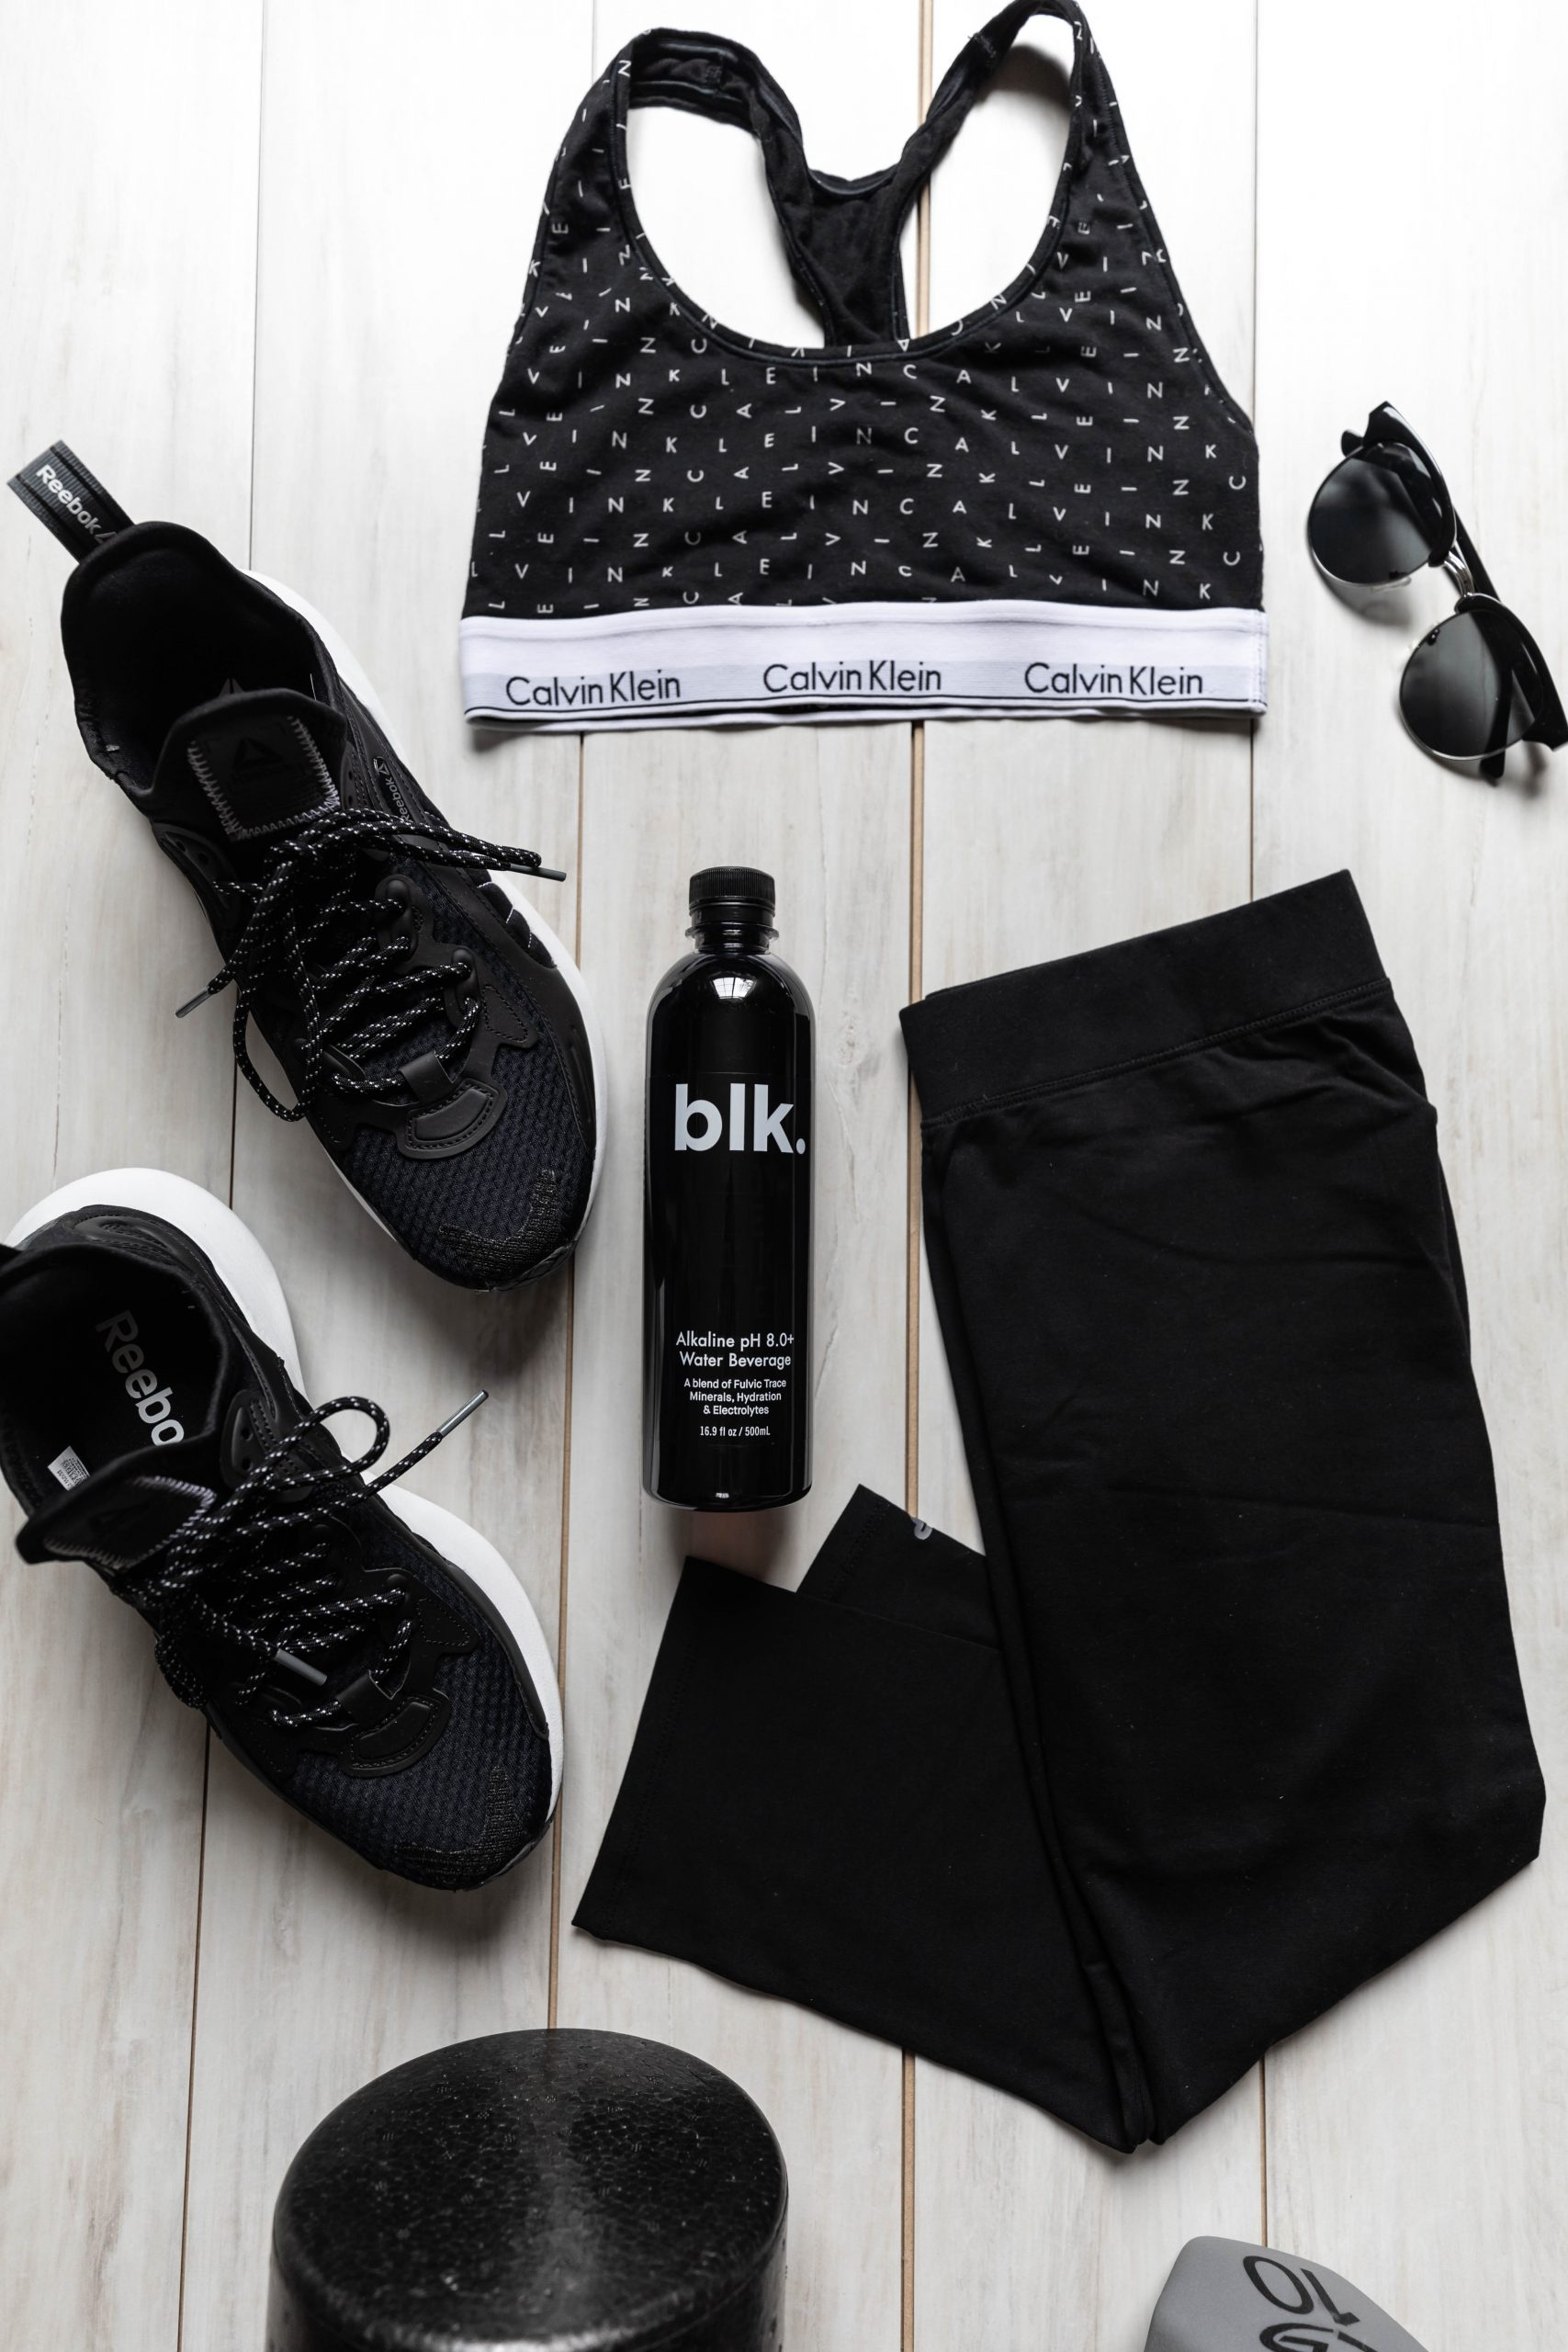 Alexis Ren 30 Day Workout Challenge Results & Review by Annie Fairfax Workout Aesthetic Outfit All Black Reebok, Calvin Klein, Pact